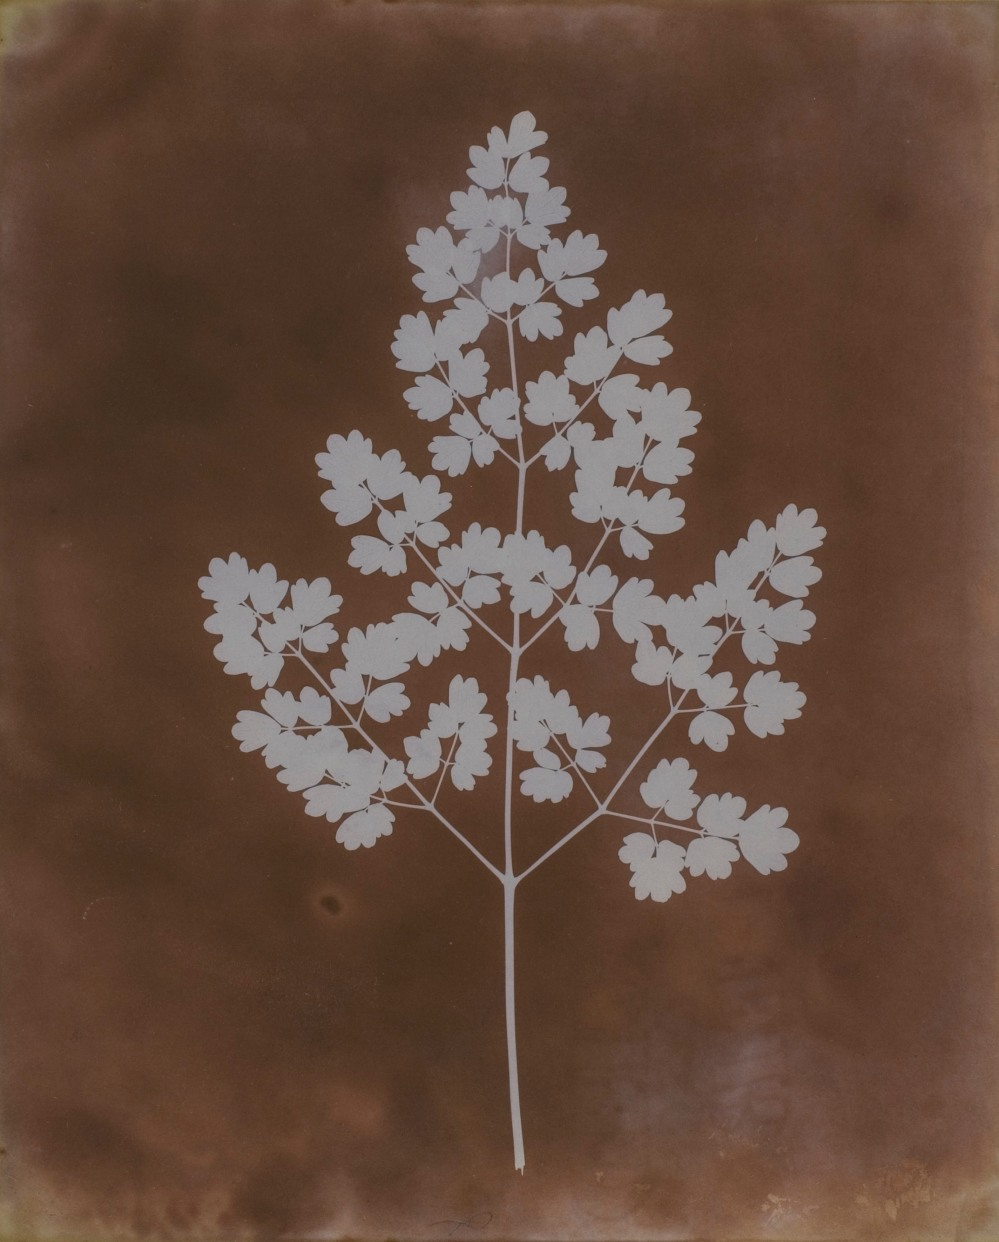 William Henry Fox Talbot, Thalictrum minus (lesser meadow-rue), probably early 1839. Courtesy Hans P. Kraus Jr. Photo London 2018, Sun Pictures Then and Now – Talbot and his Legacy Tod